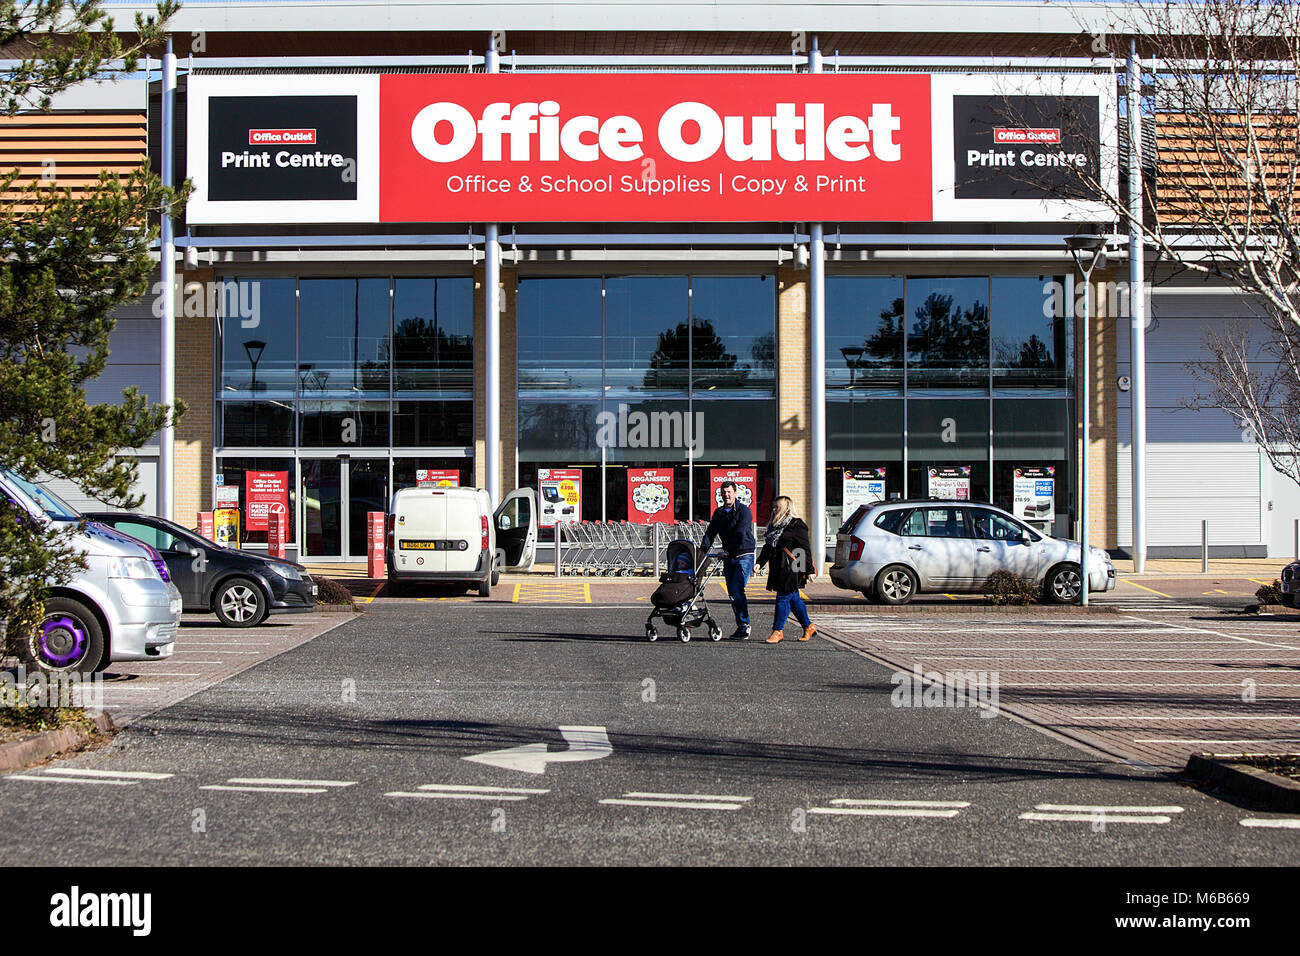 One of (33) images related to UK retail with popular high street company's and brands. Office Outlet business - Stock Image